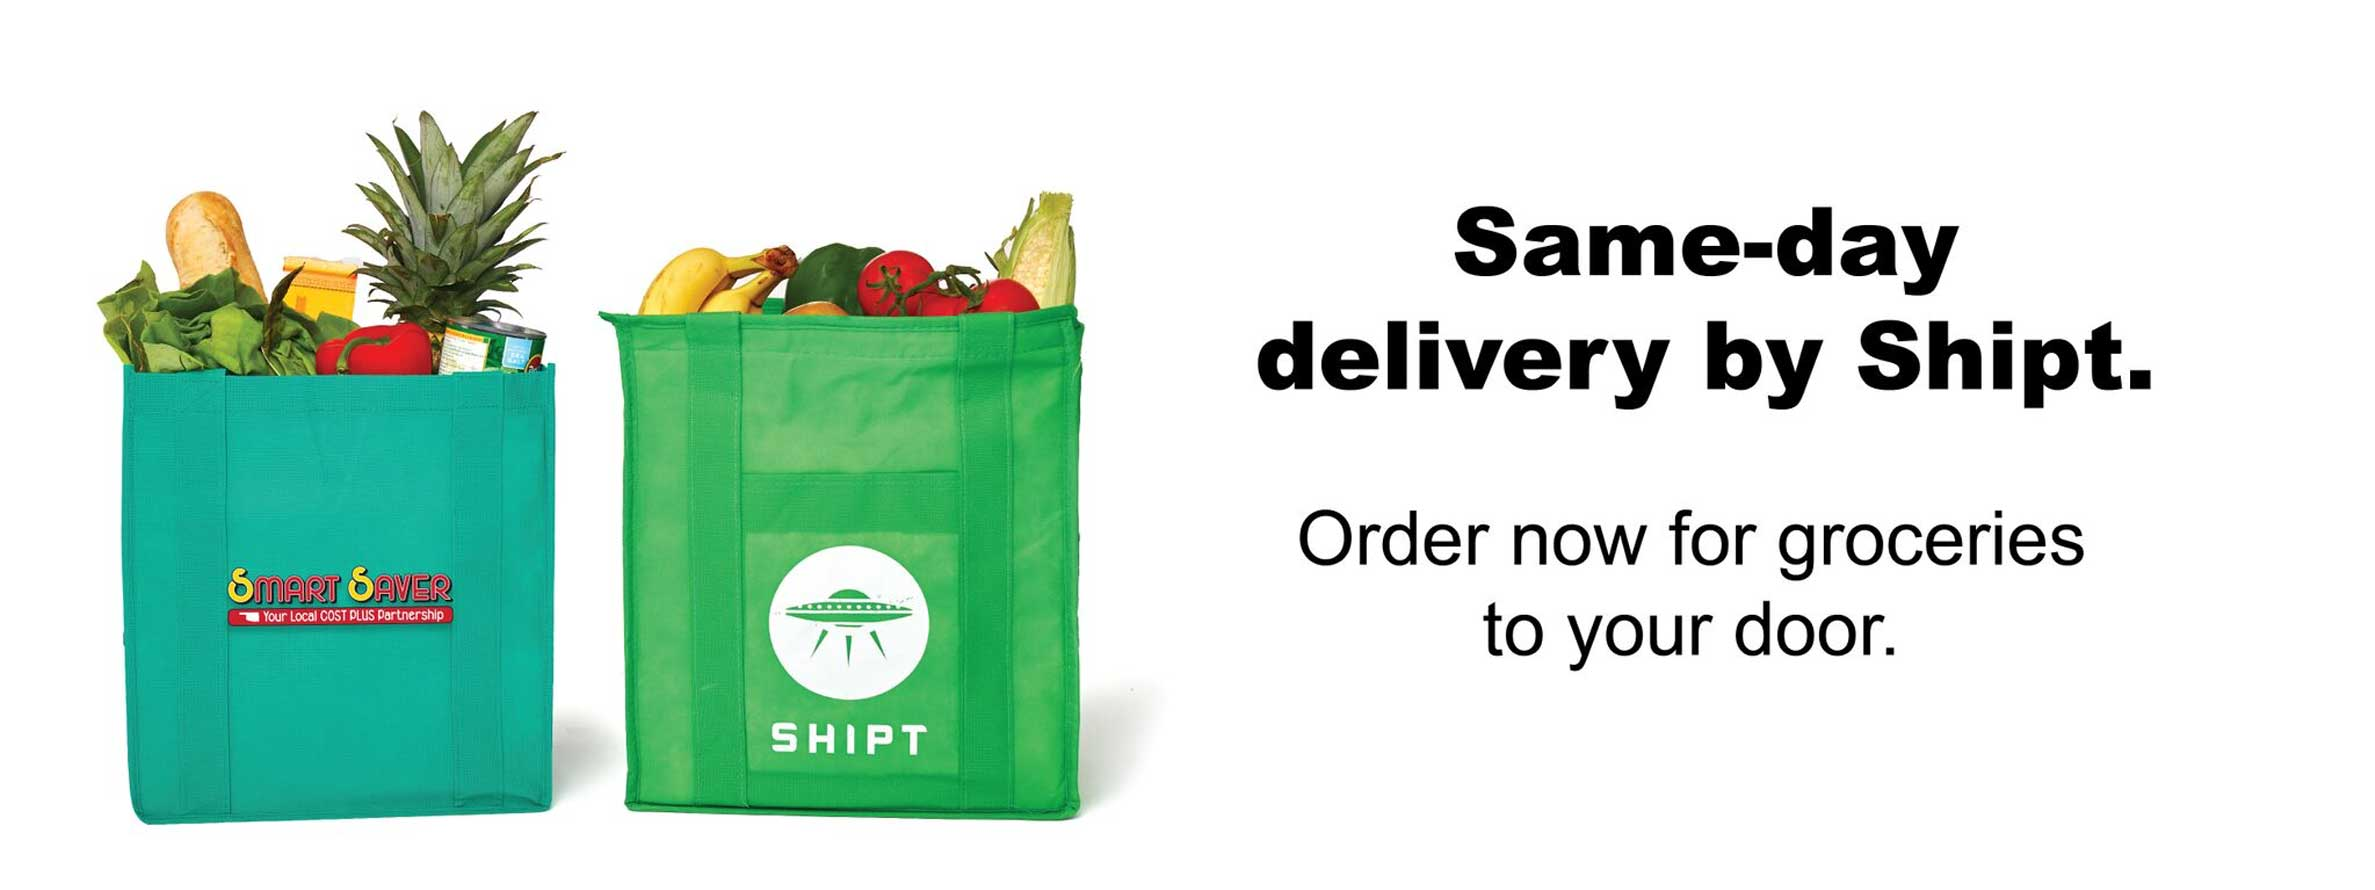 Home delivery with Shipt now available